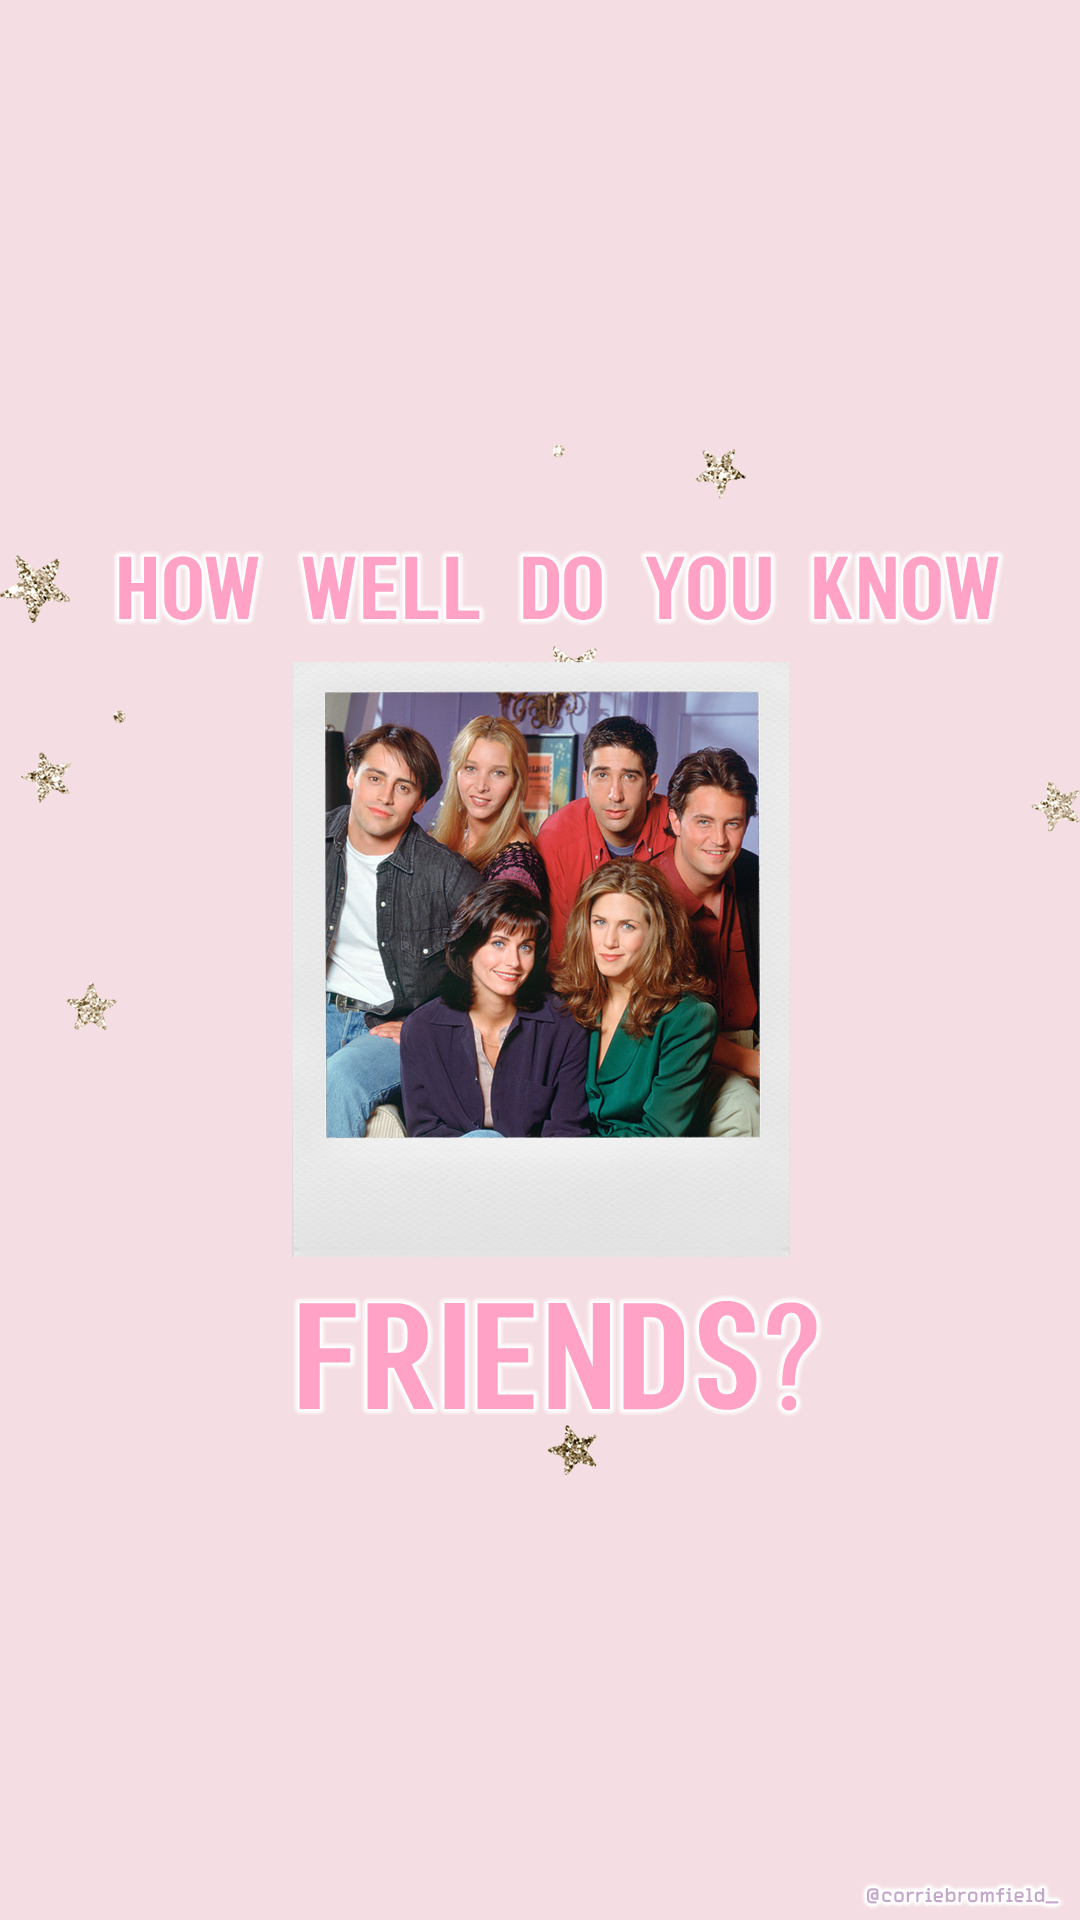 friends quiz, how well do you know friends